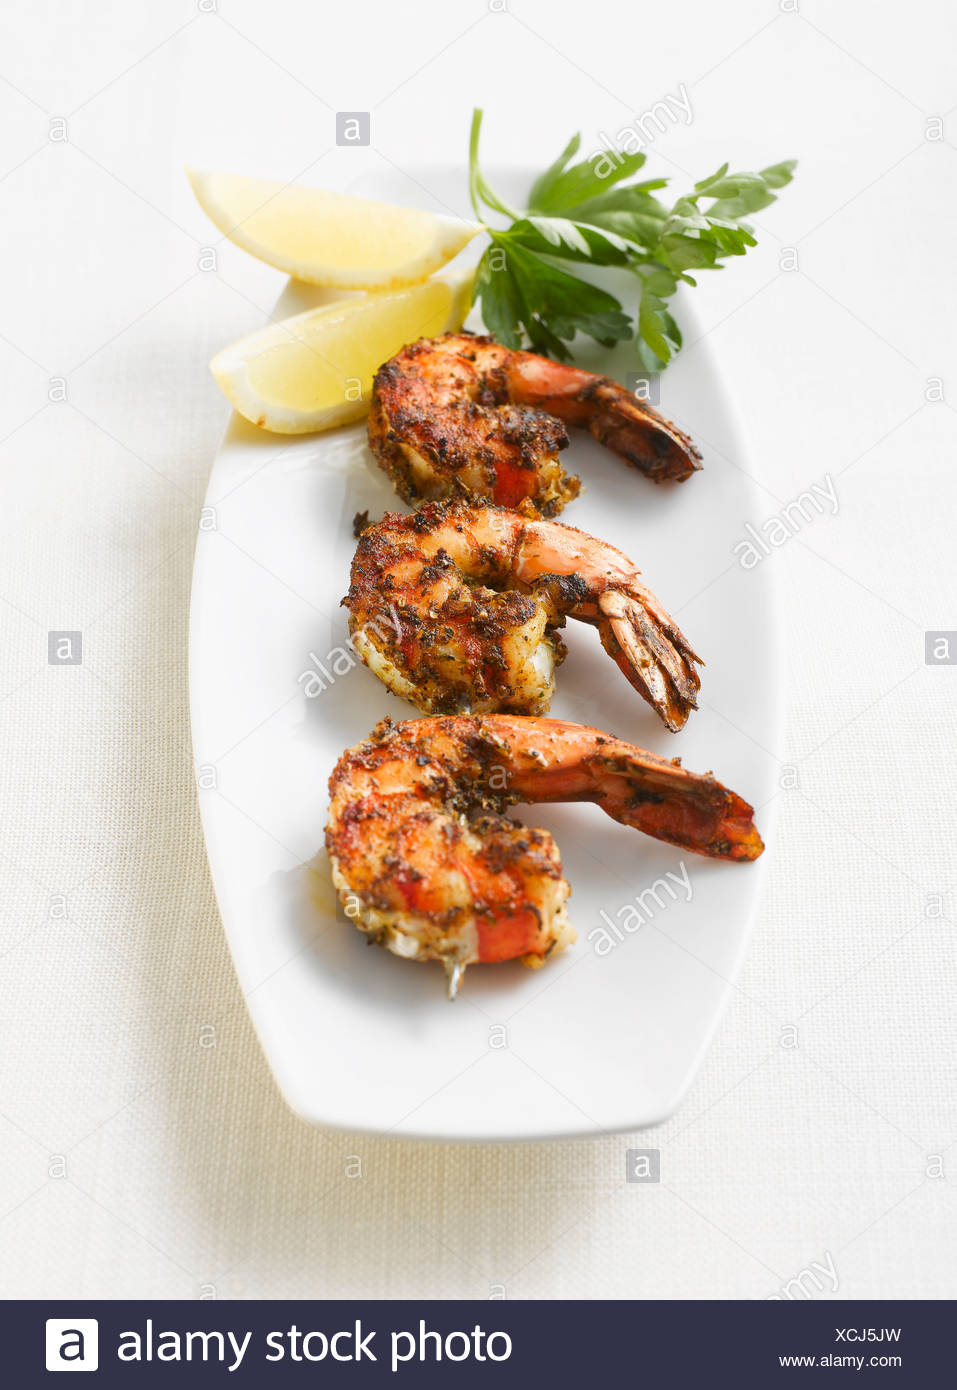 Grilled shrimps, parsley and lemon slices on platter, elevated view - Stock Image